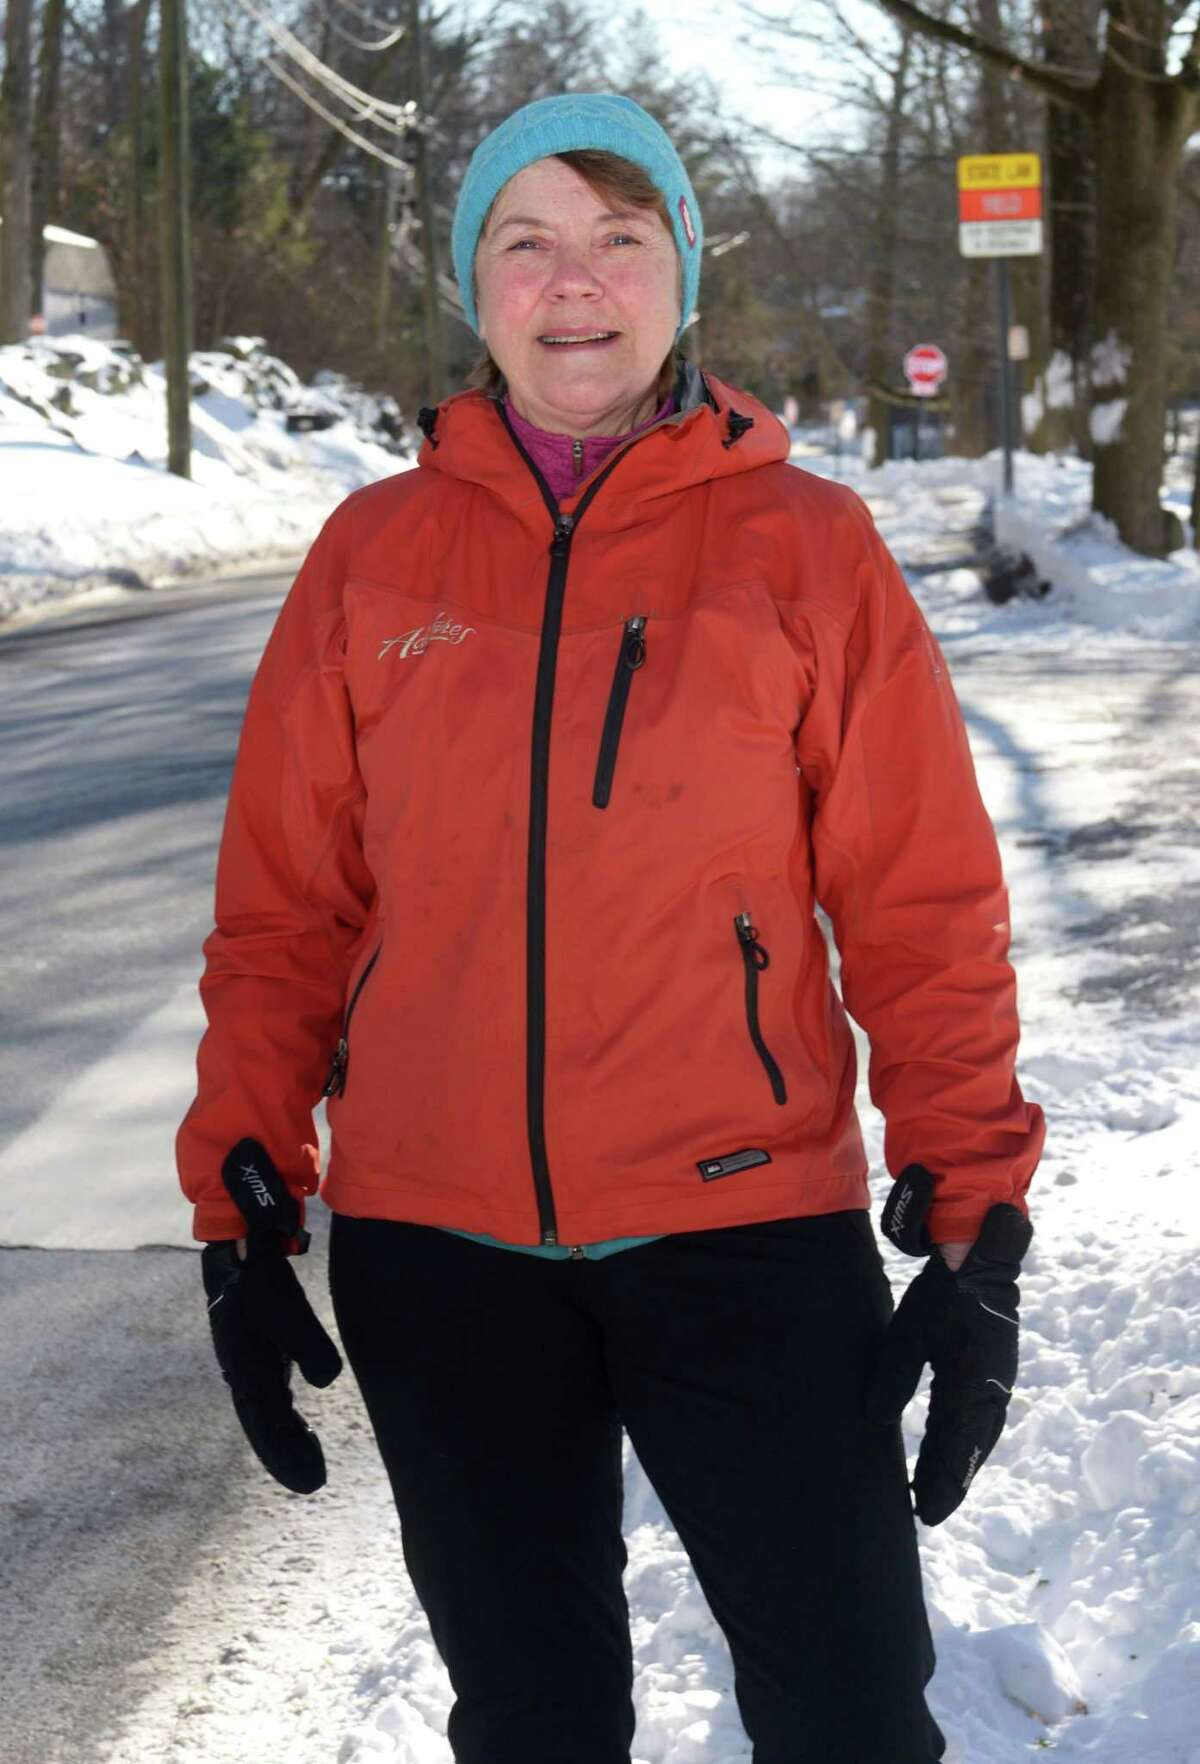 Deborah Lewis, an avid NorWALKER, organizes a weekly walking tour from Silvermine School on Saturday mornings. Having formerly worked in the corporate wellness industry, she believes that a good walking program is social, safe and should be regularly scheduled.